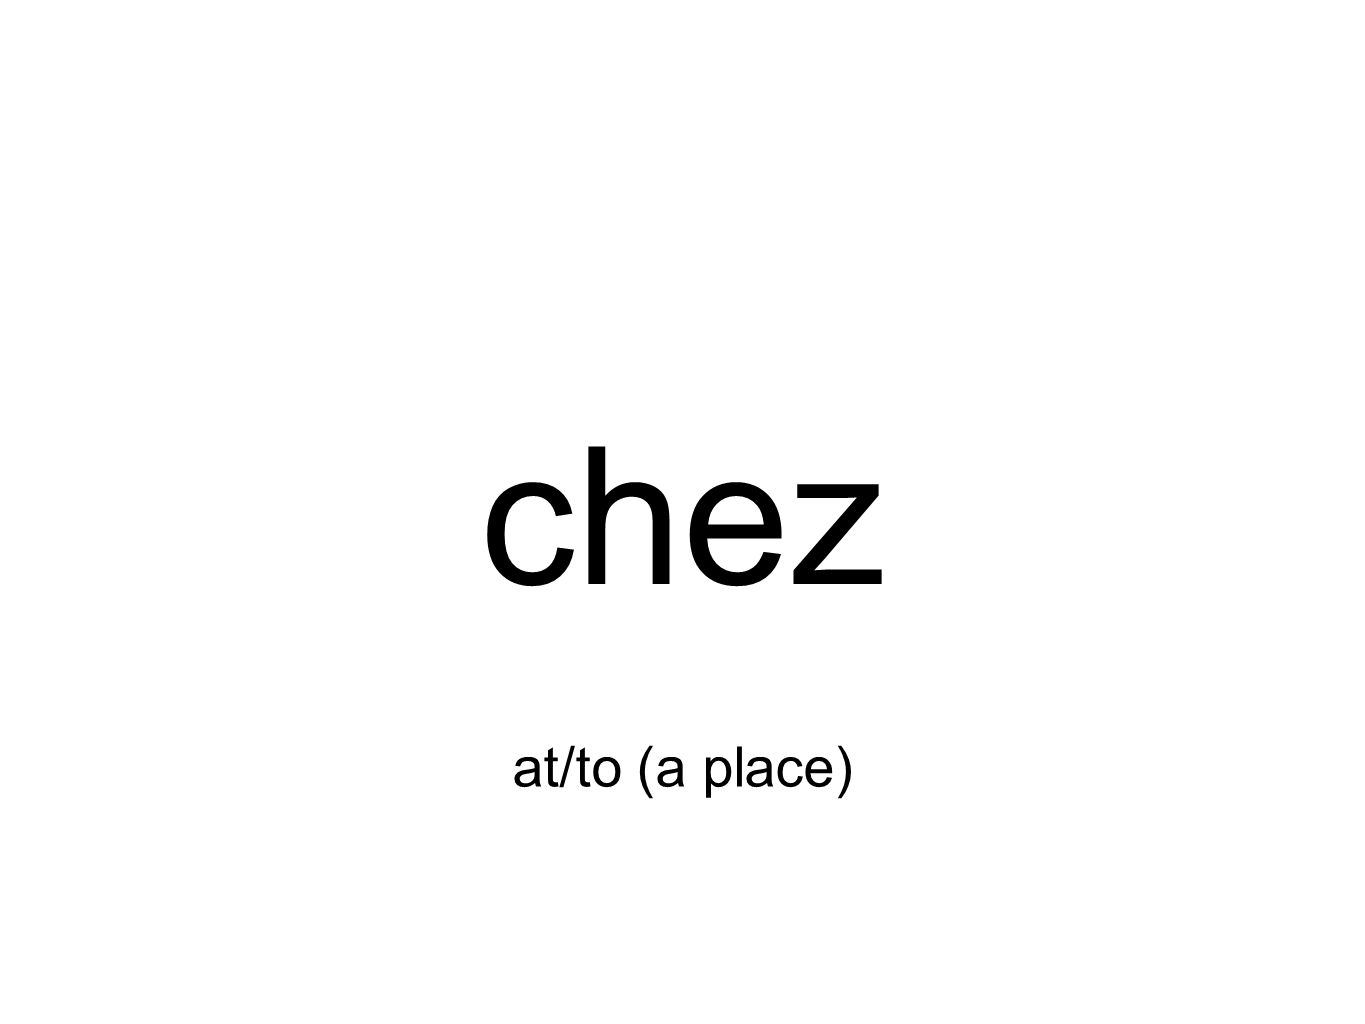 chez at/to (a place)